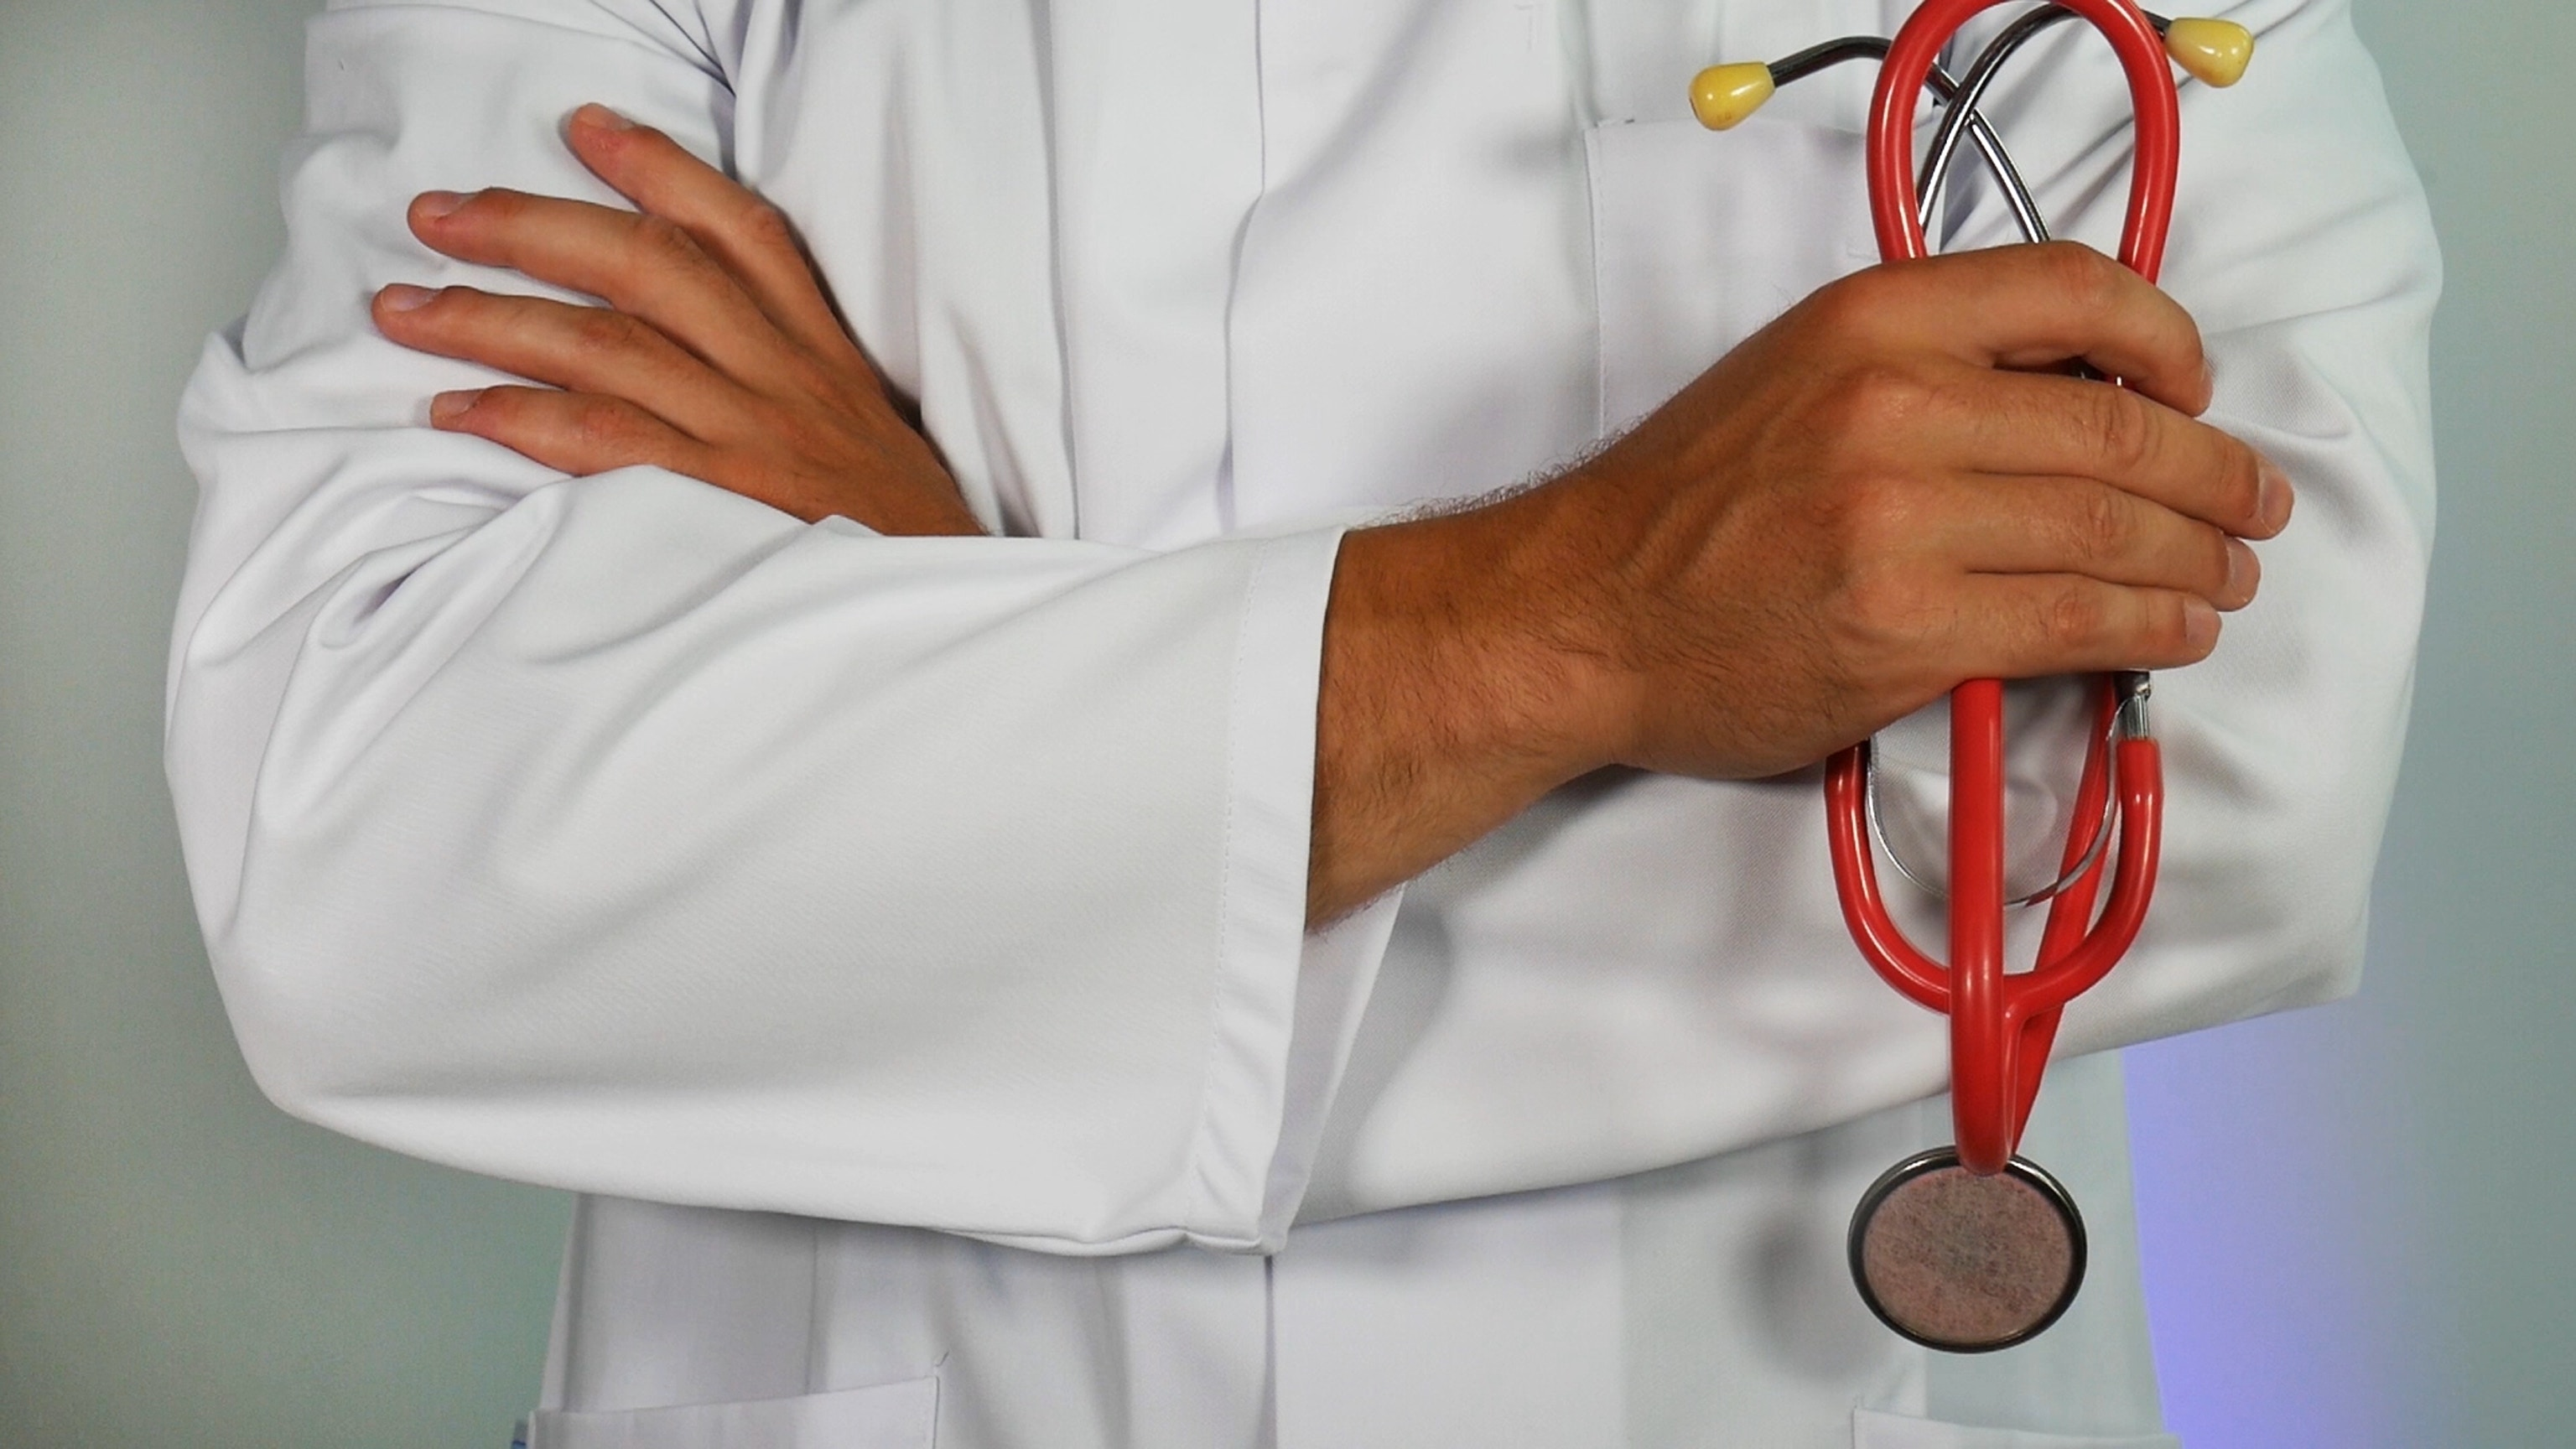 Midsection of a doctor wearing a white lab coat holding a red stethoscope with arms crossed